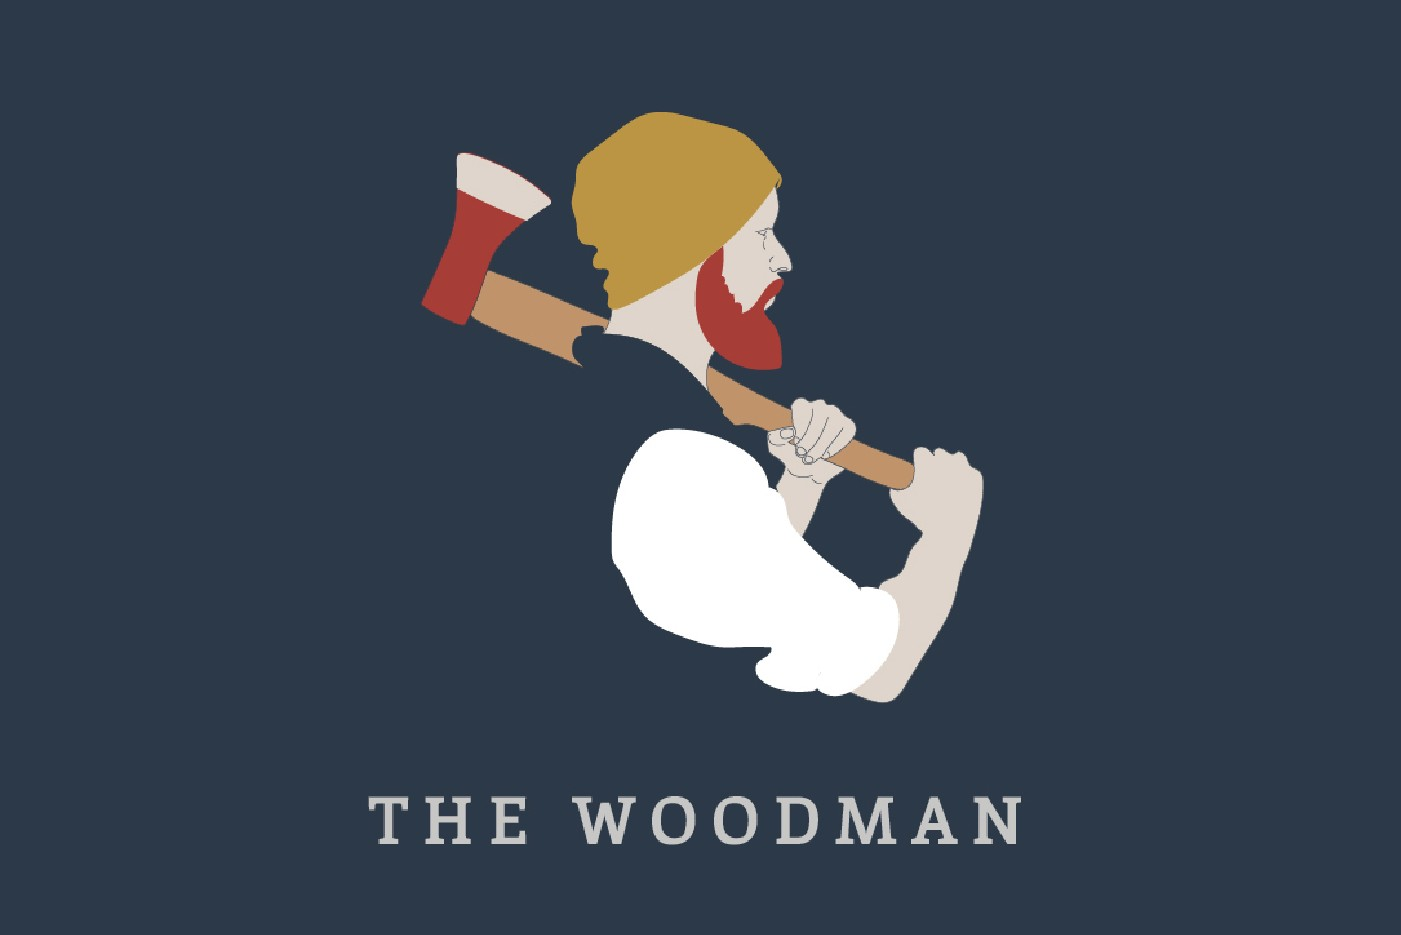 Marston's Heritage Pub sign design Woodman